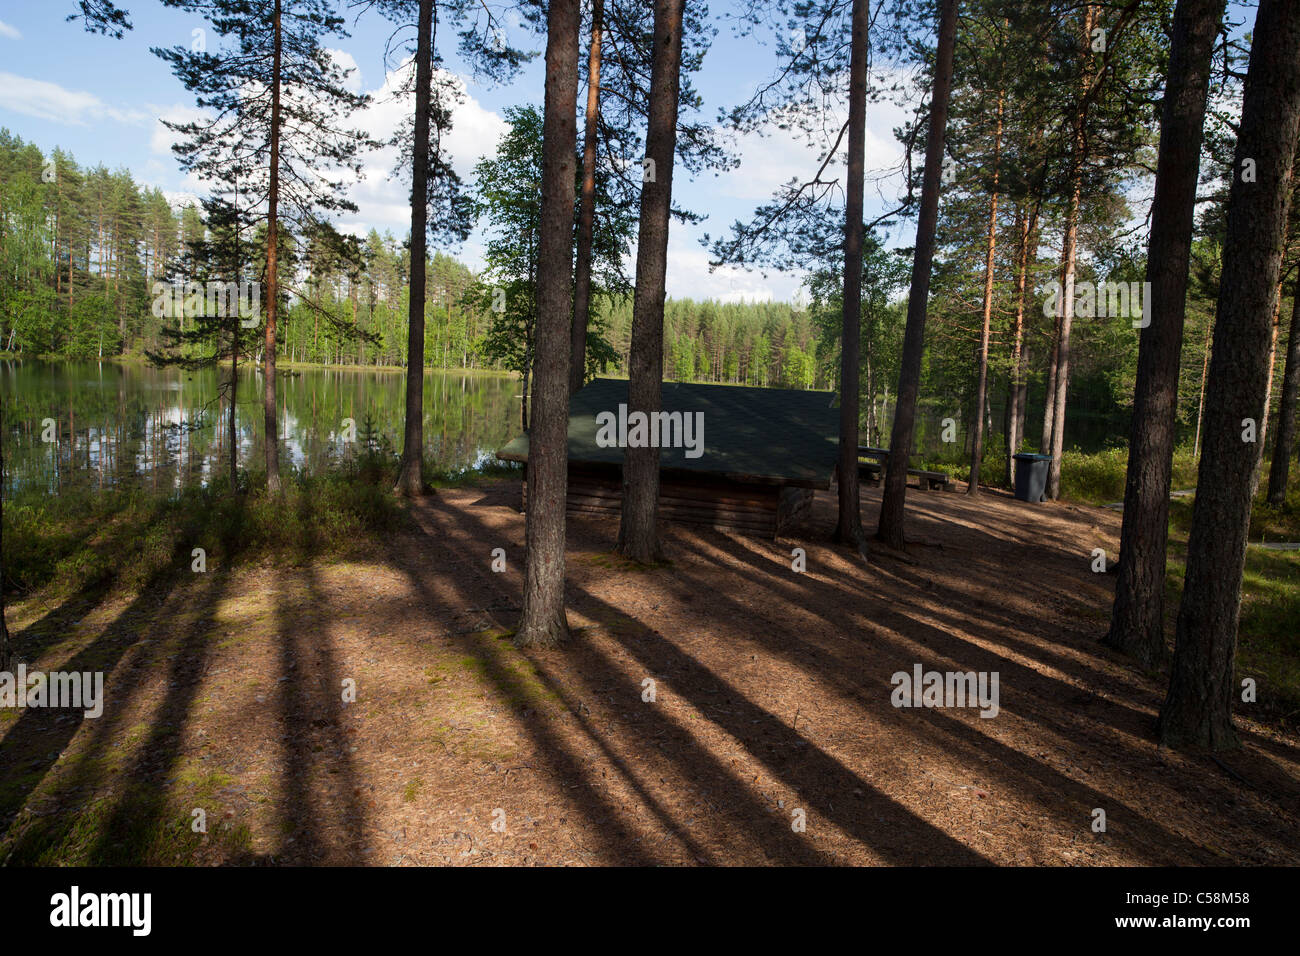 Camping site by a forest lake .  Small wooden bivouac shelter offers shelter for rain , Finland - Stock Image